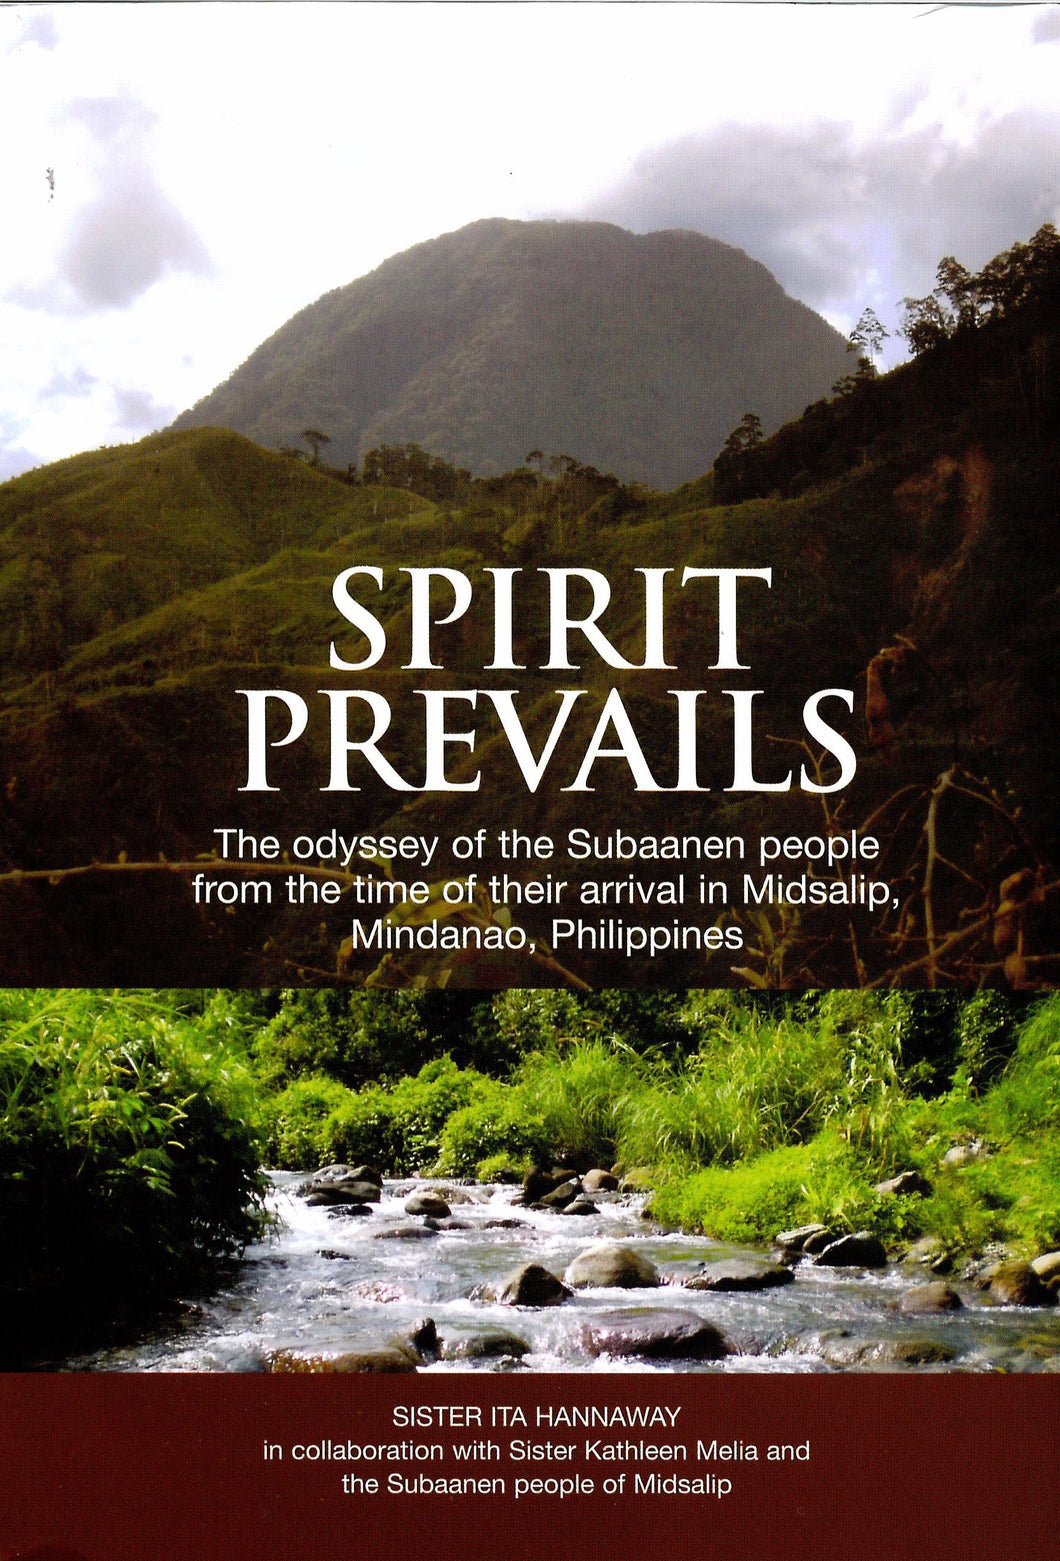 Spirit Prevails: The Odyssey of the Subaanen People from the Time of their Arrival in Midsalip, Mindanao, Philippines